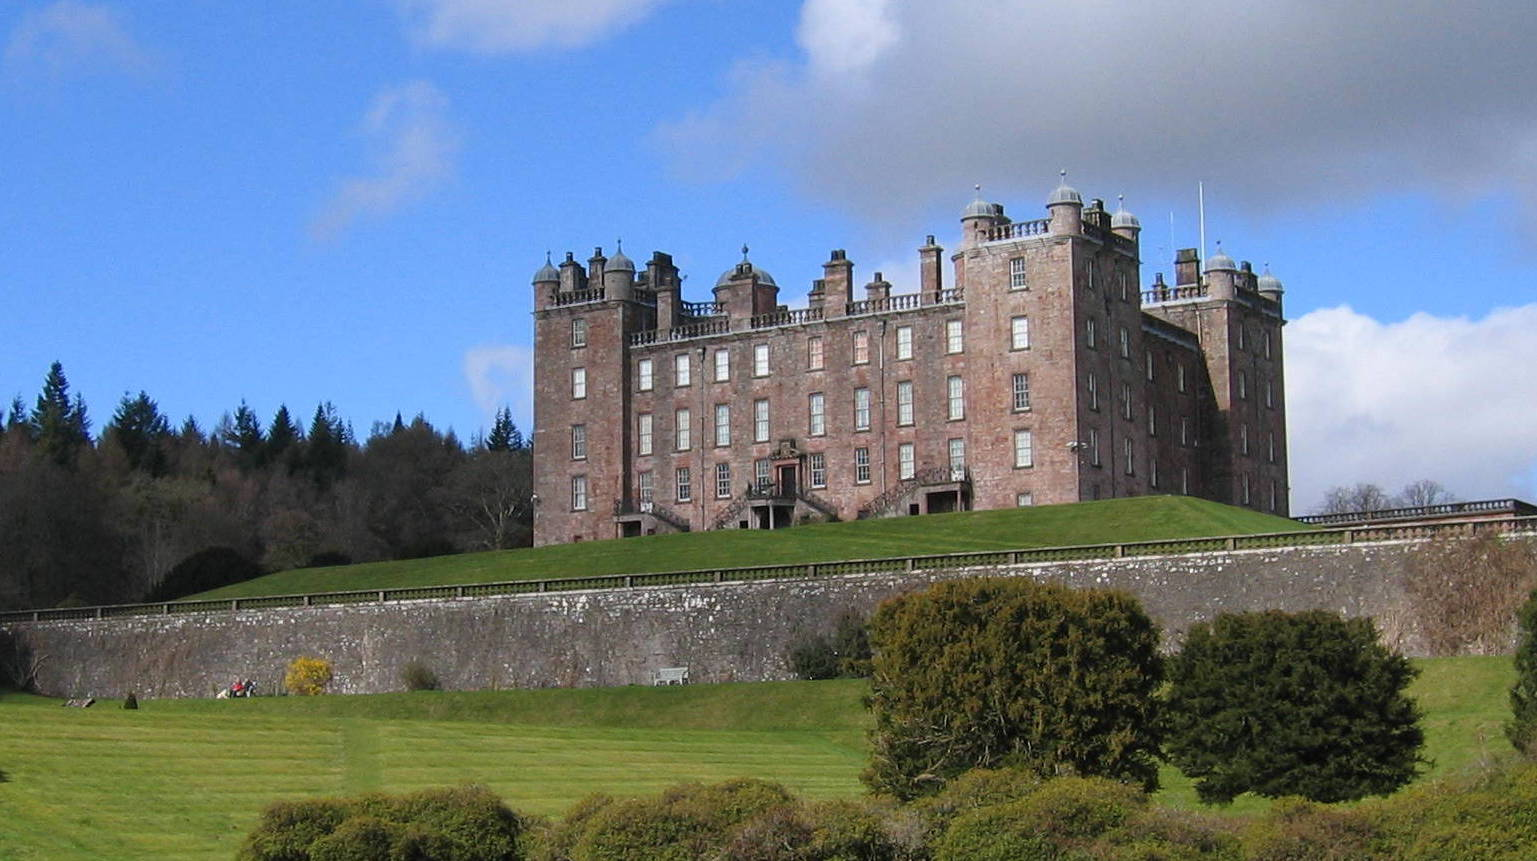 Drumlanrig Castle taken by Torbeckhill